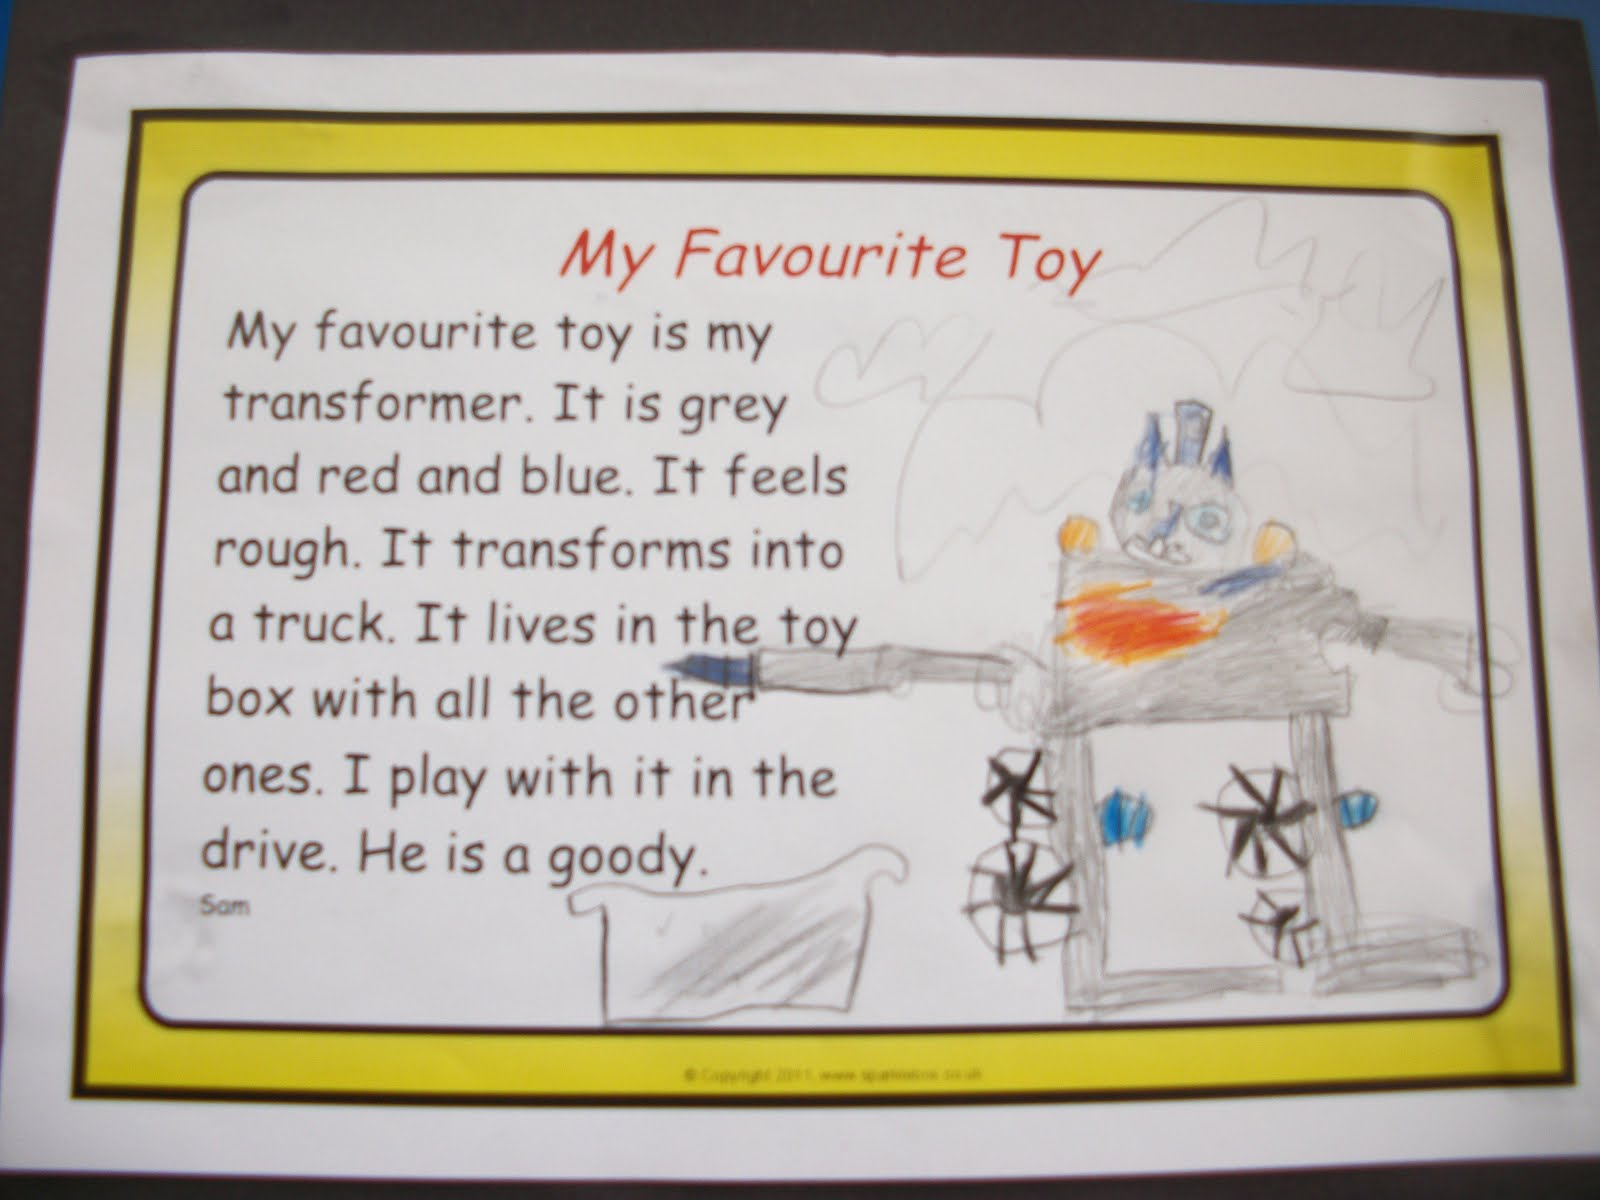 room2 brightwater school nelson new zealand 2019  my favourite toy